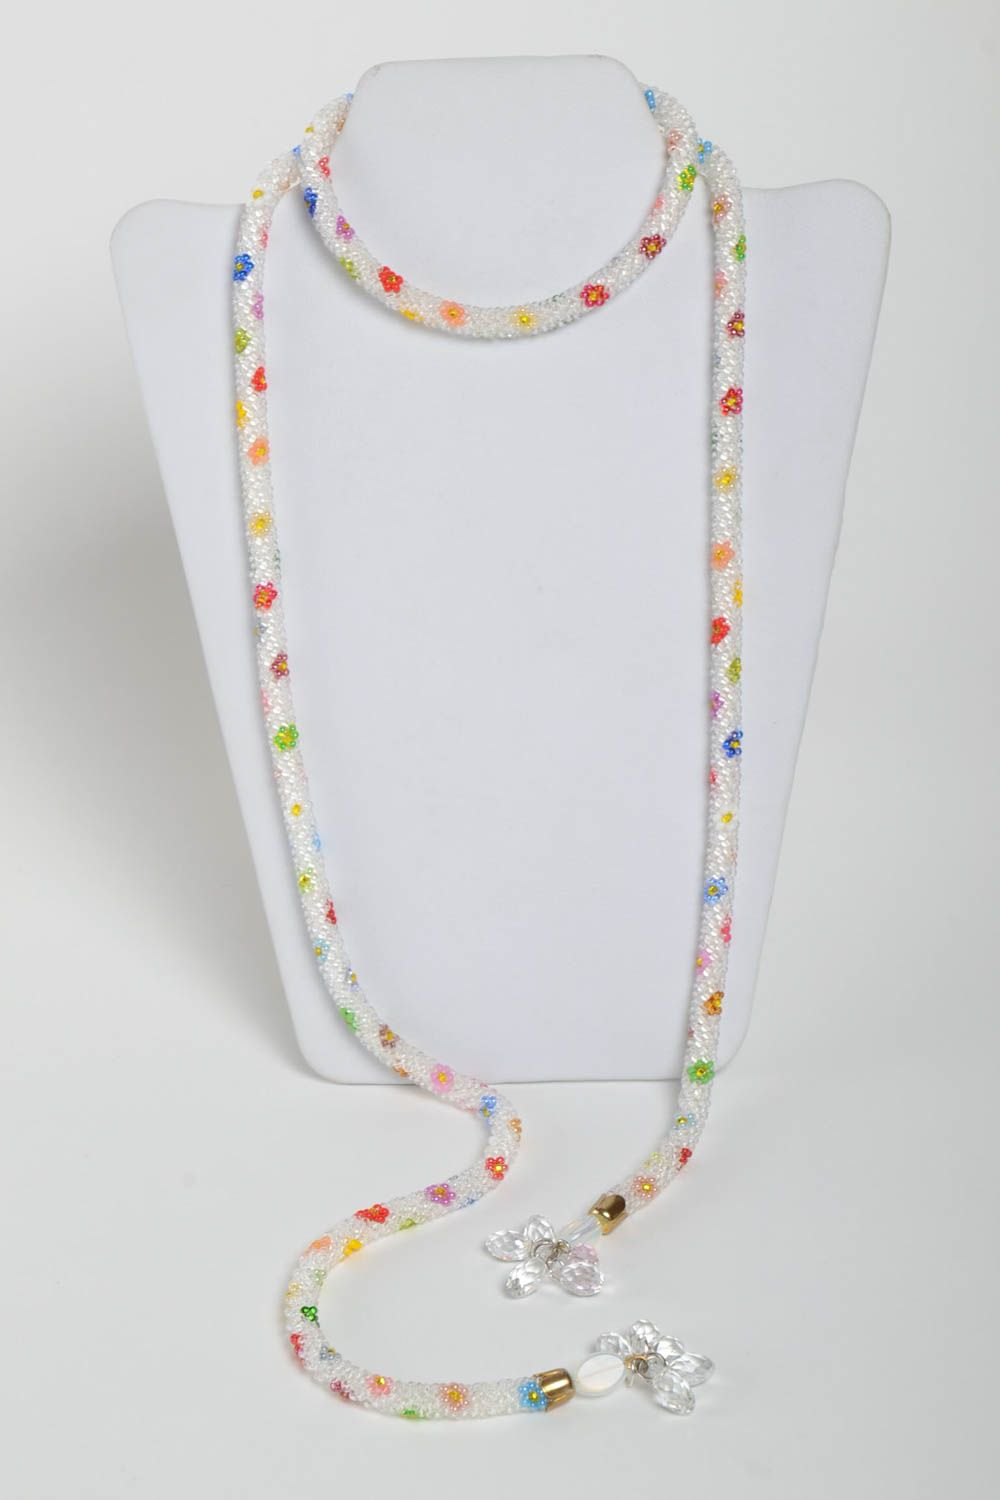 Colorful handmade beaded cord necklace long necklace for women gifts for her photo 3